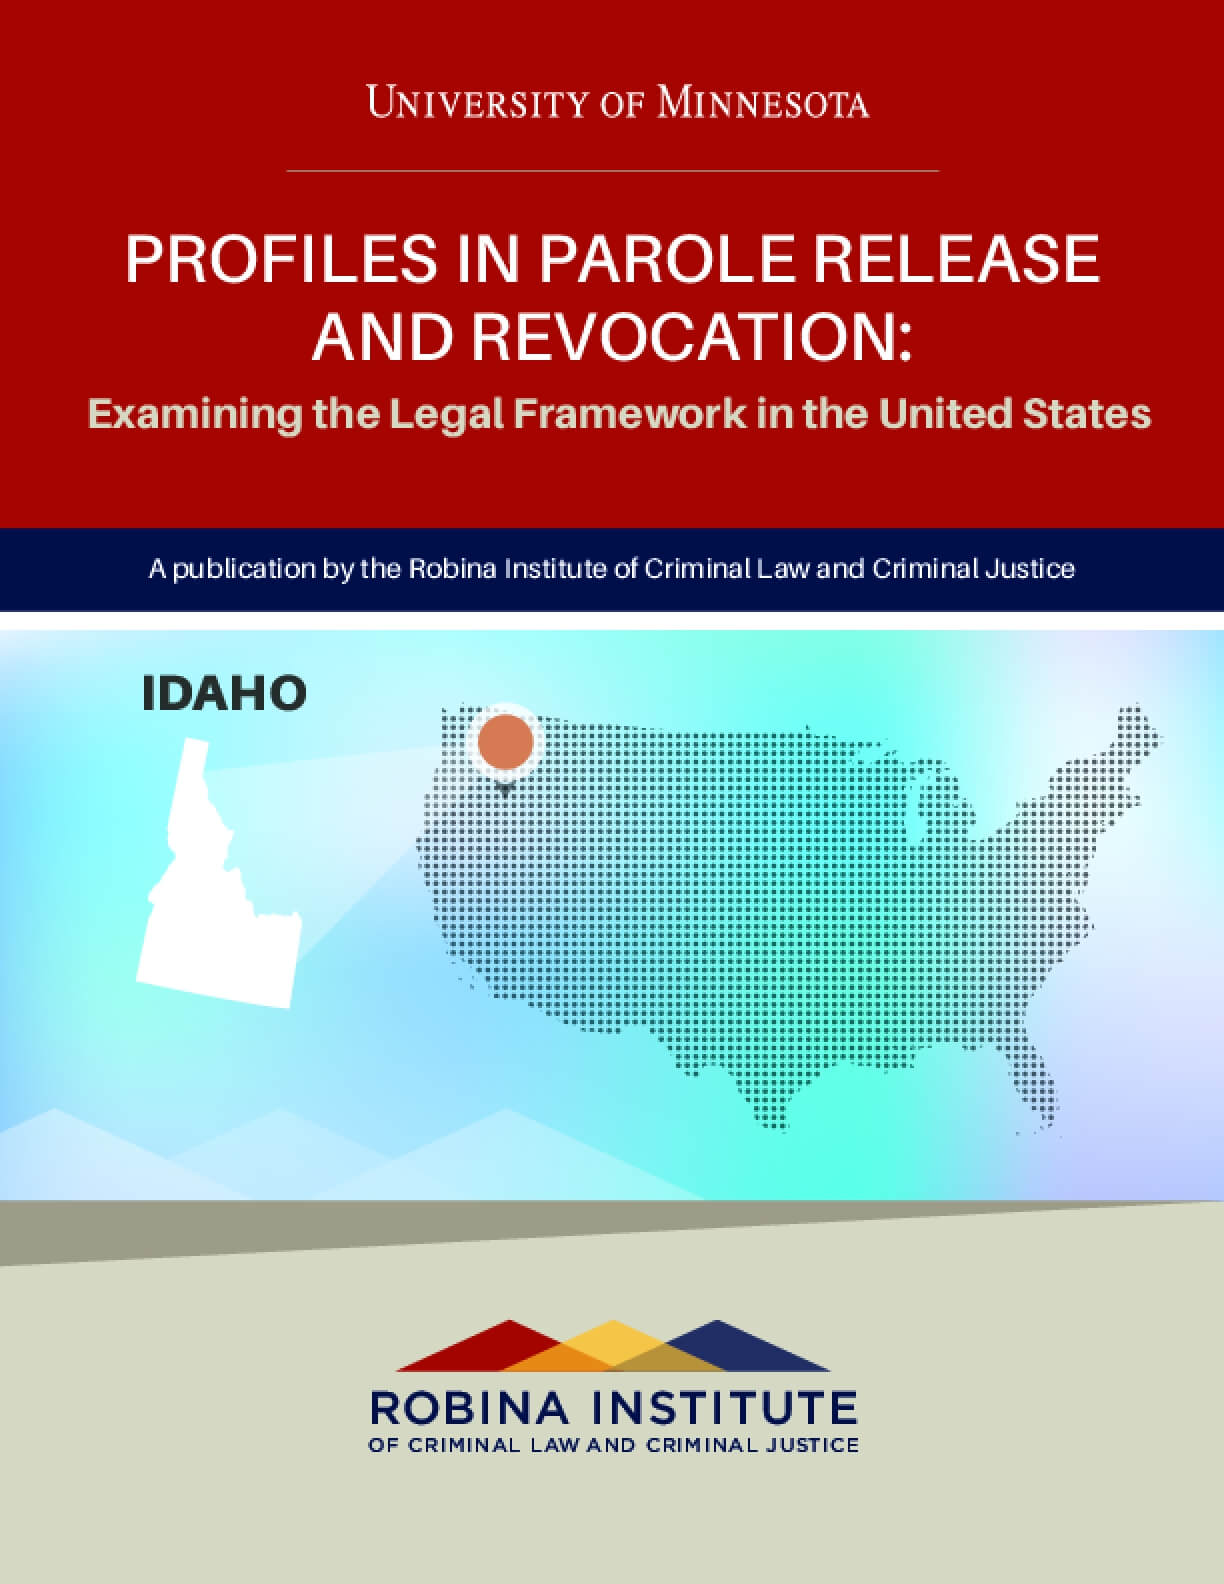 Profiles in Parole Release and Revocation Idaho